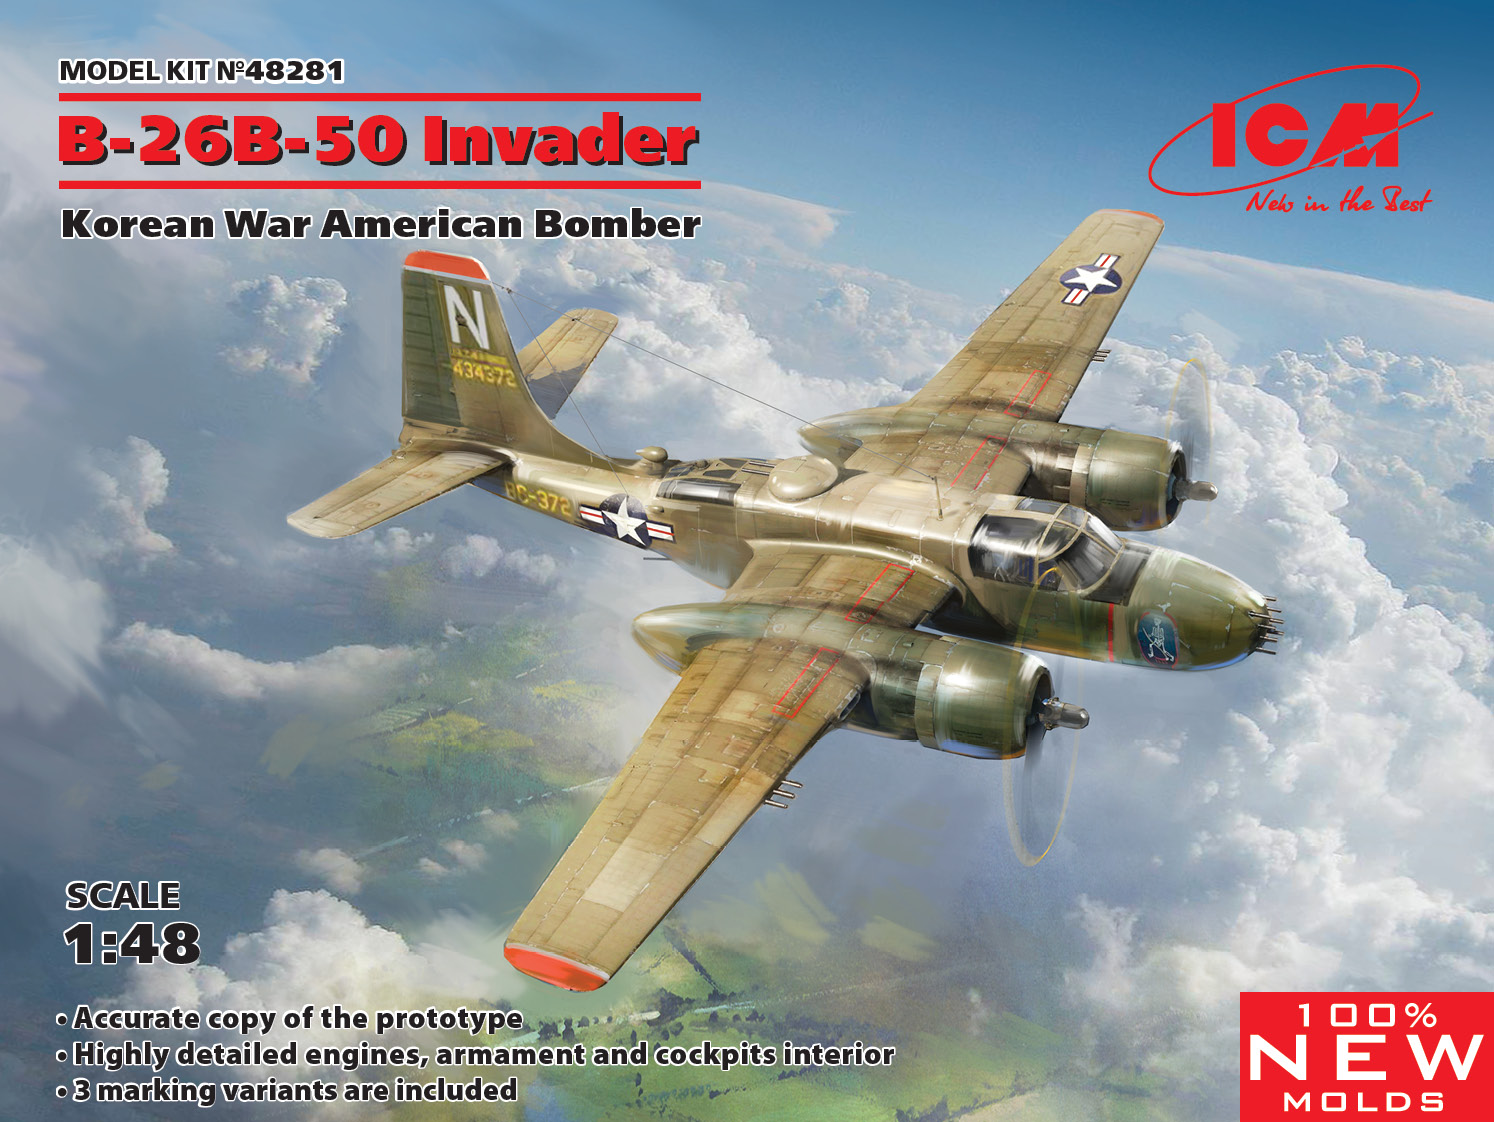 ICM B-26B-50 Invader, Korean War American Bomber (100% new molds)